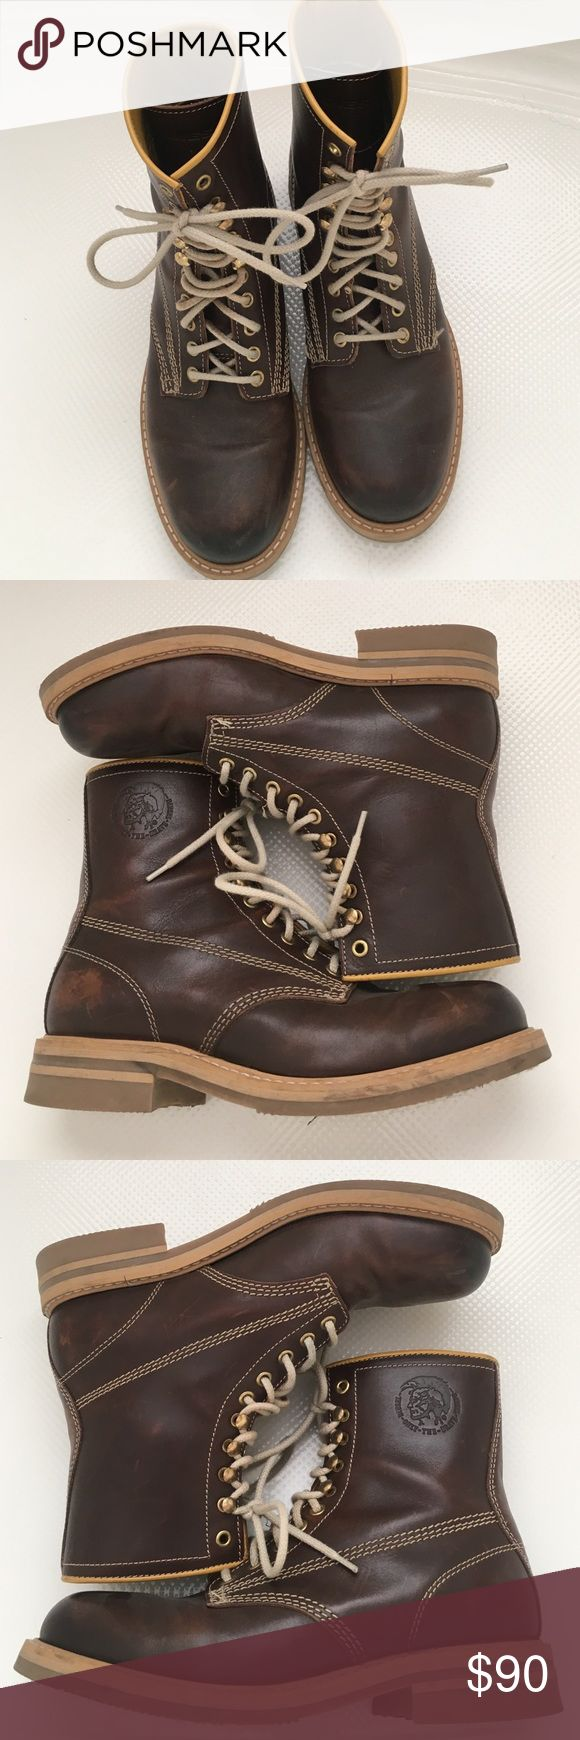 Mens Diesel Boots. Brown w/ Tan trim. Size 9 Mens Diesel biker style boots. Lace up. Brown with Tan stitching, laces and sole. Inside of the right shoe will probably need to be glued down soon or resewn. Still in great shape Diesel Shoes Boots